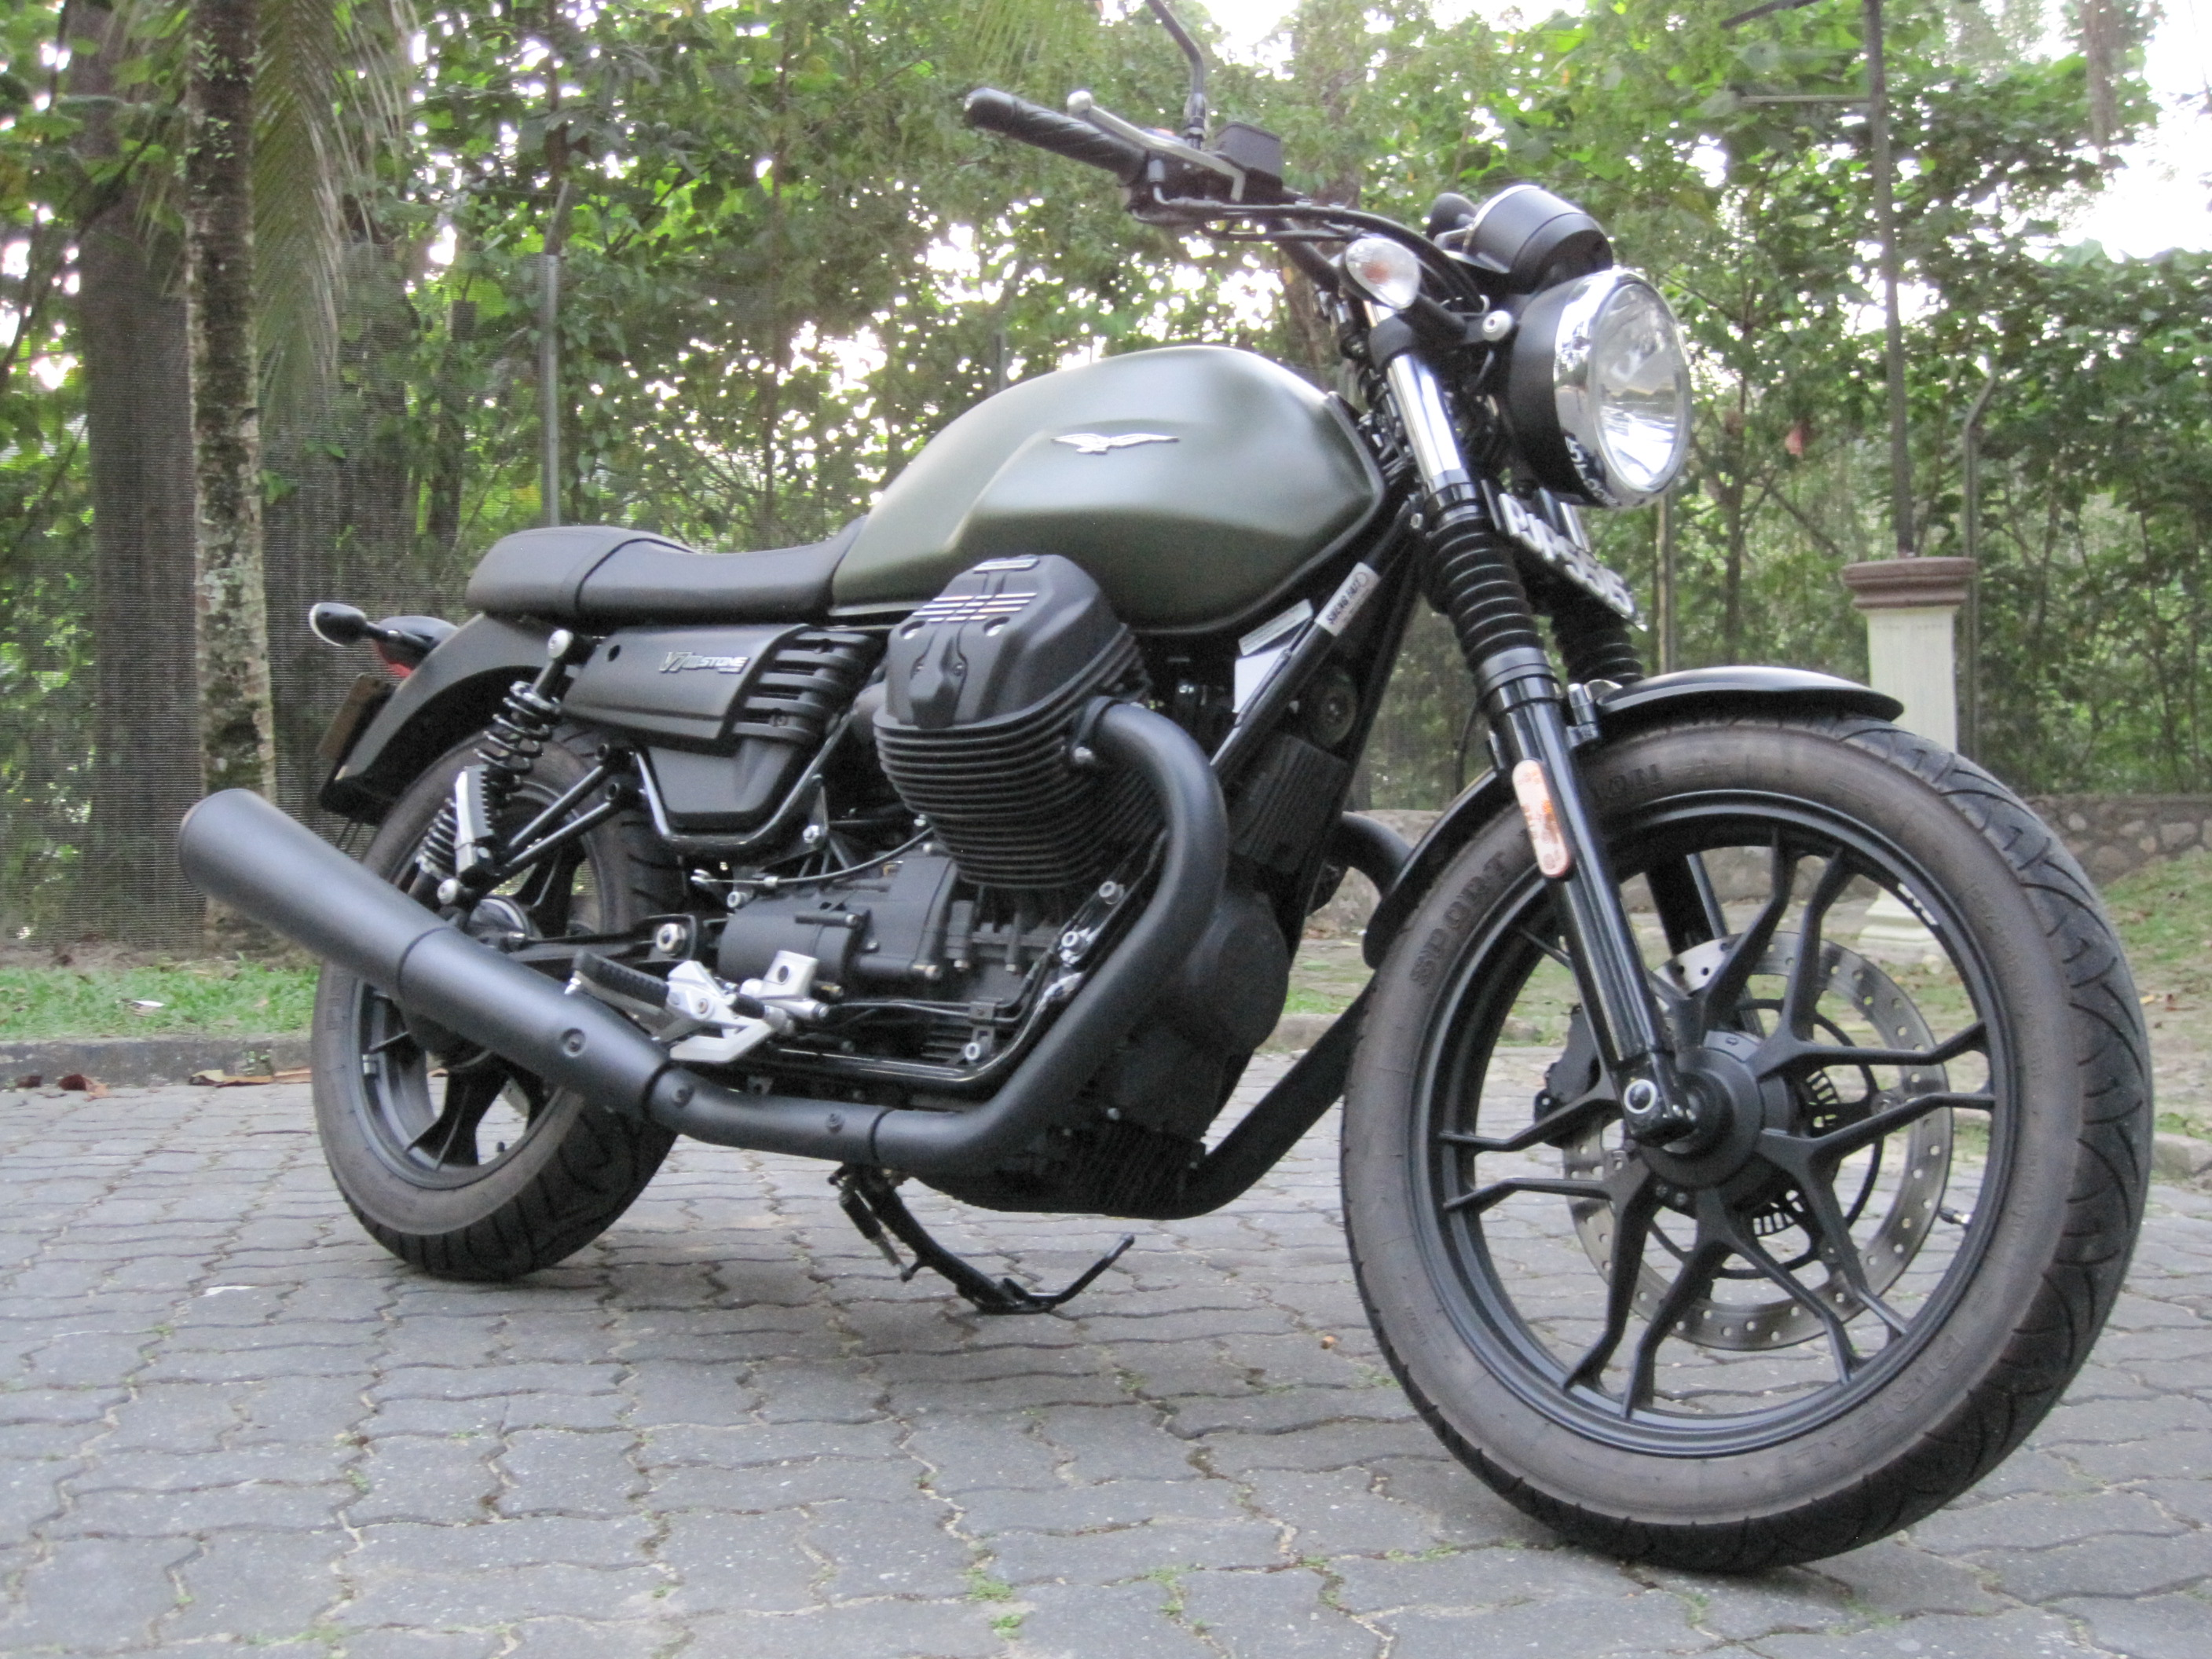 Bikes Moto Guzzi V7 Iii Stone You Need Big Stones To Ride This